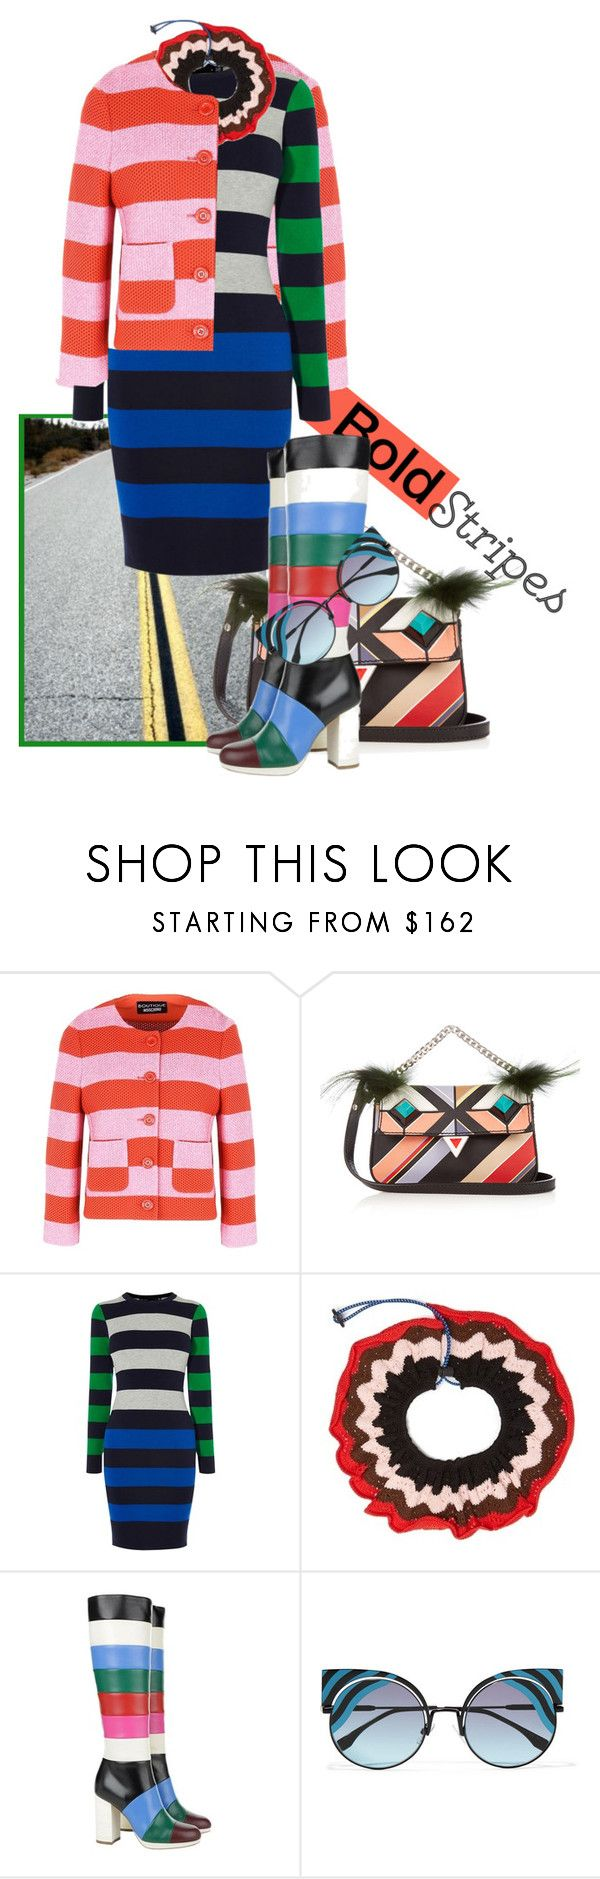 """Untitled #2379"" by hexy ❤ liked on Polyvore featuring Boutique Moschino, Fendi, Karen Millen, Marni and Valentino"